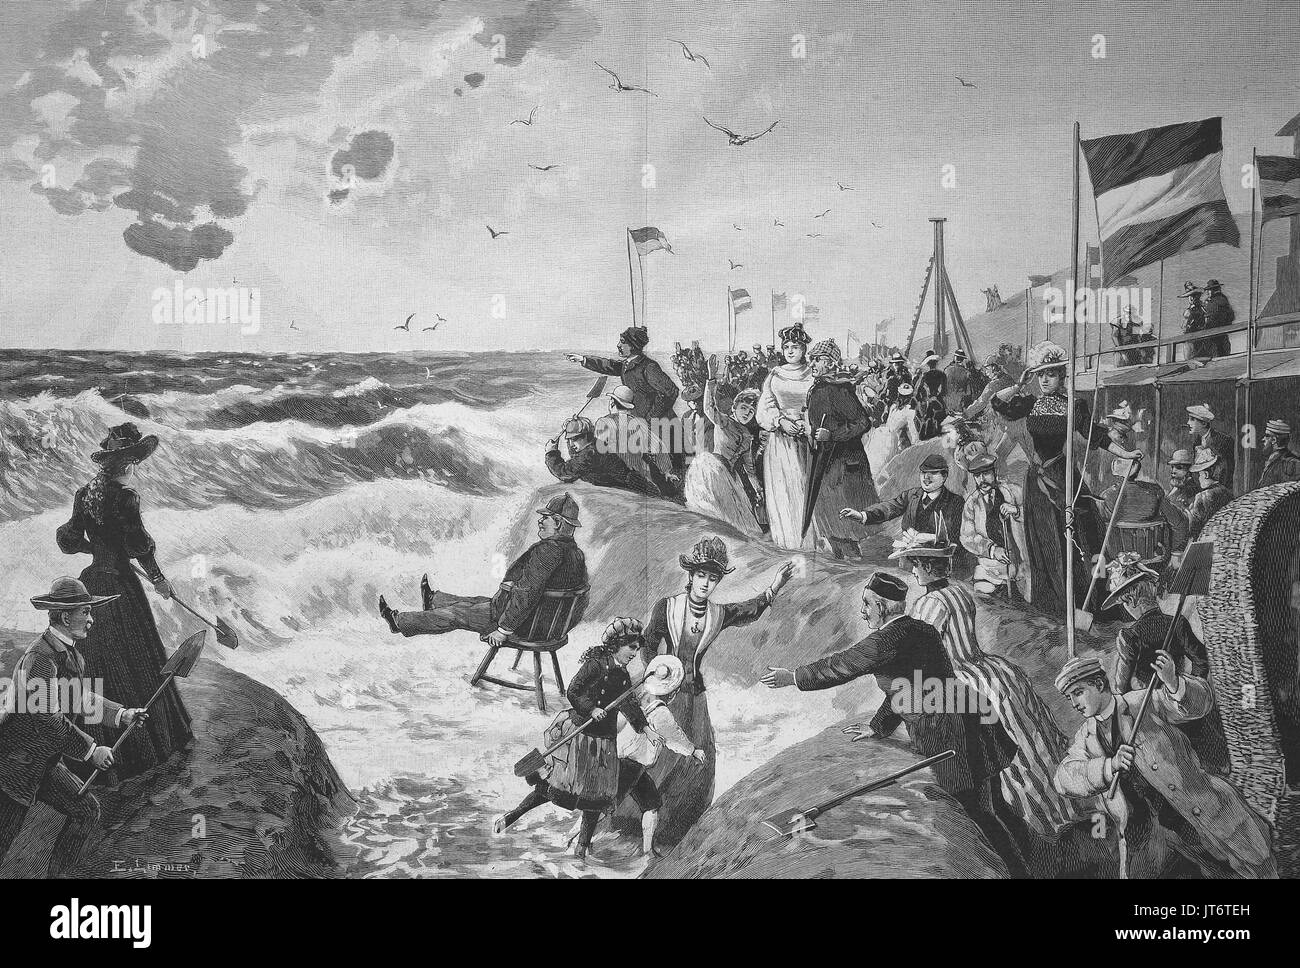 Summer vacationers on the beach of Westerland on Sylt, Germany, high waves, Digital improved reproduction of an image published between 1880 - 1885 - Stock Image